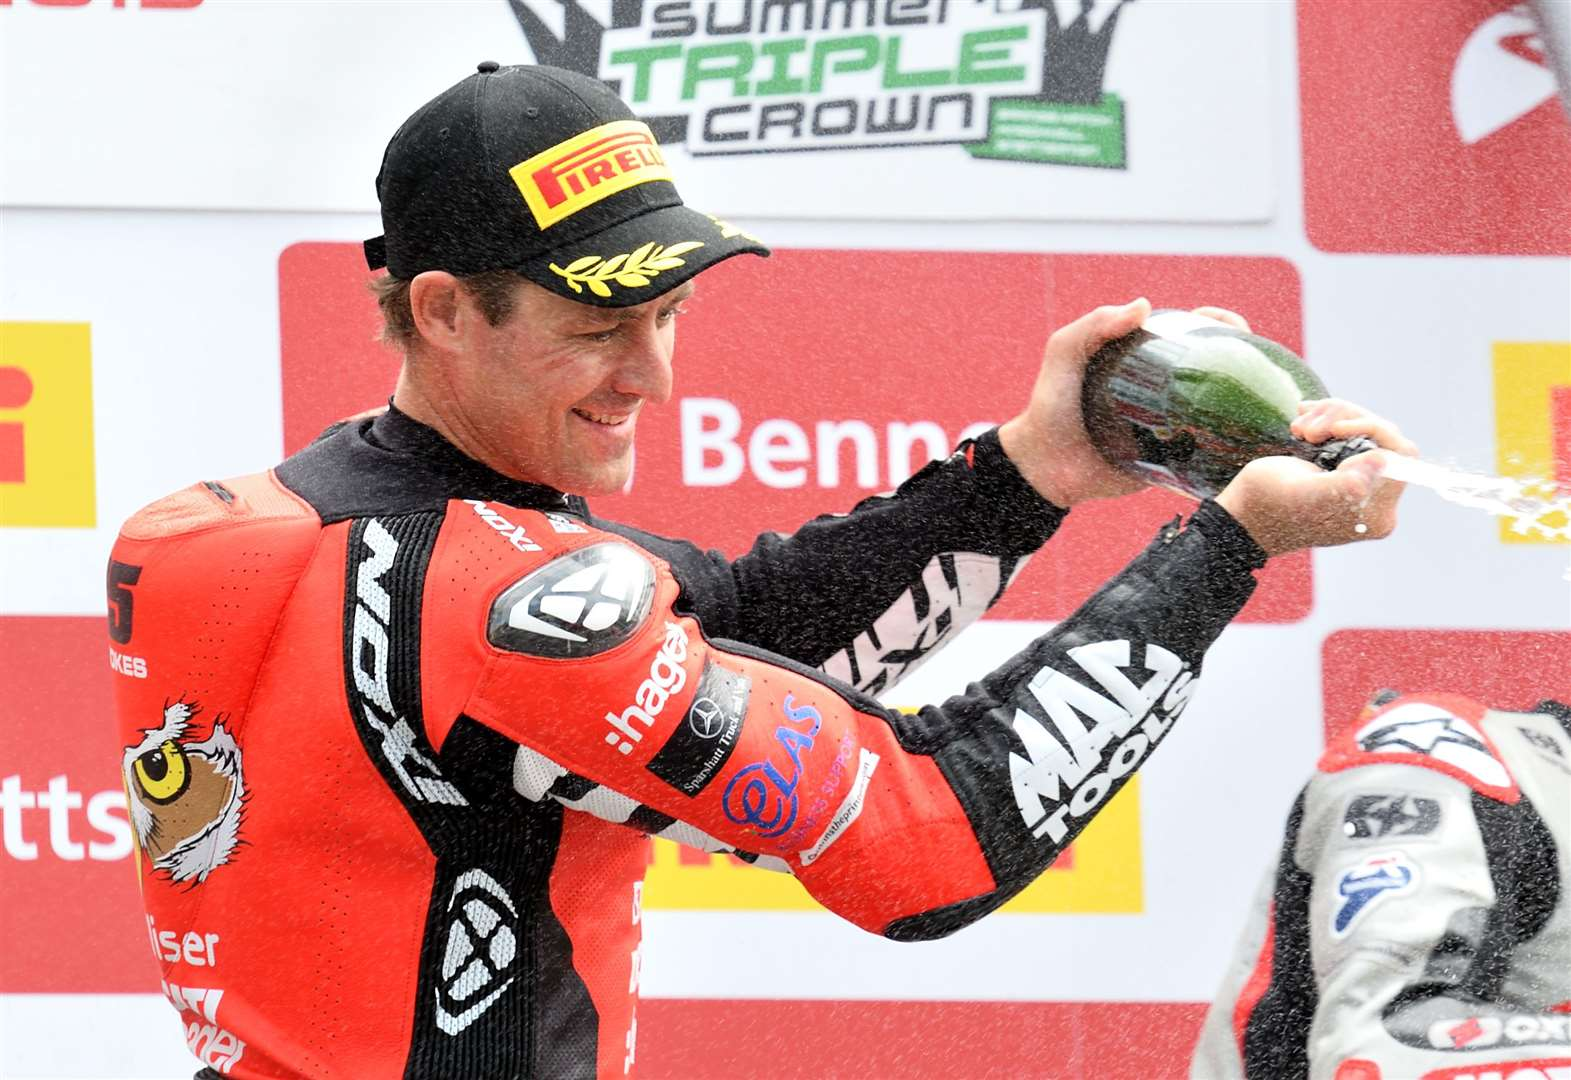 Brookes crowned King of Brands